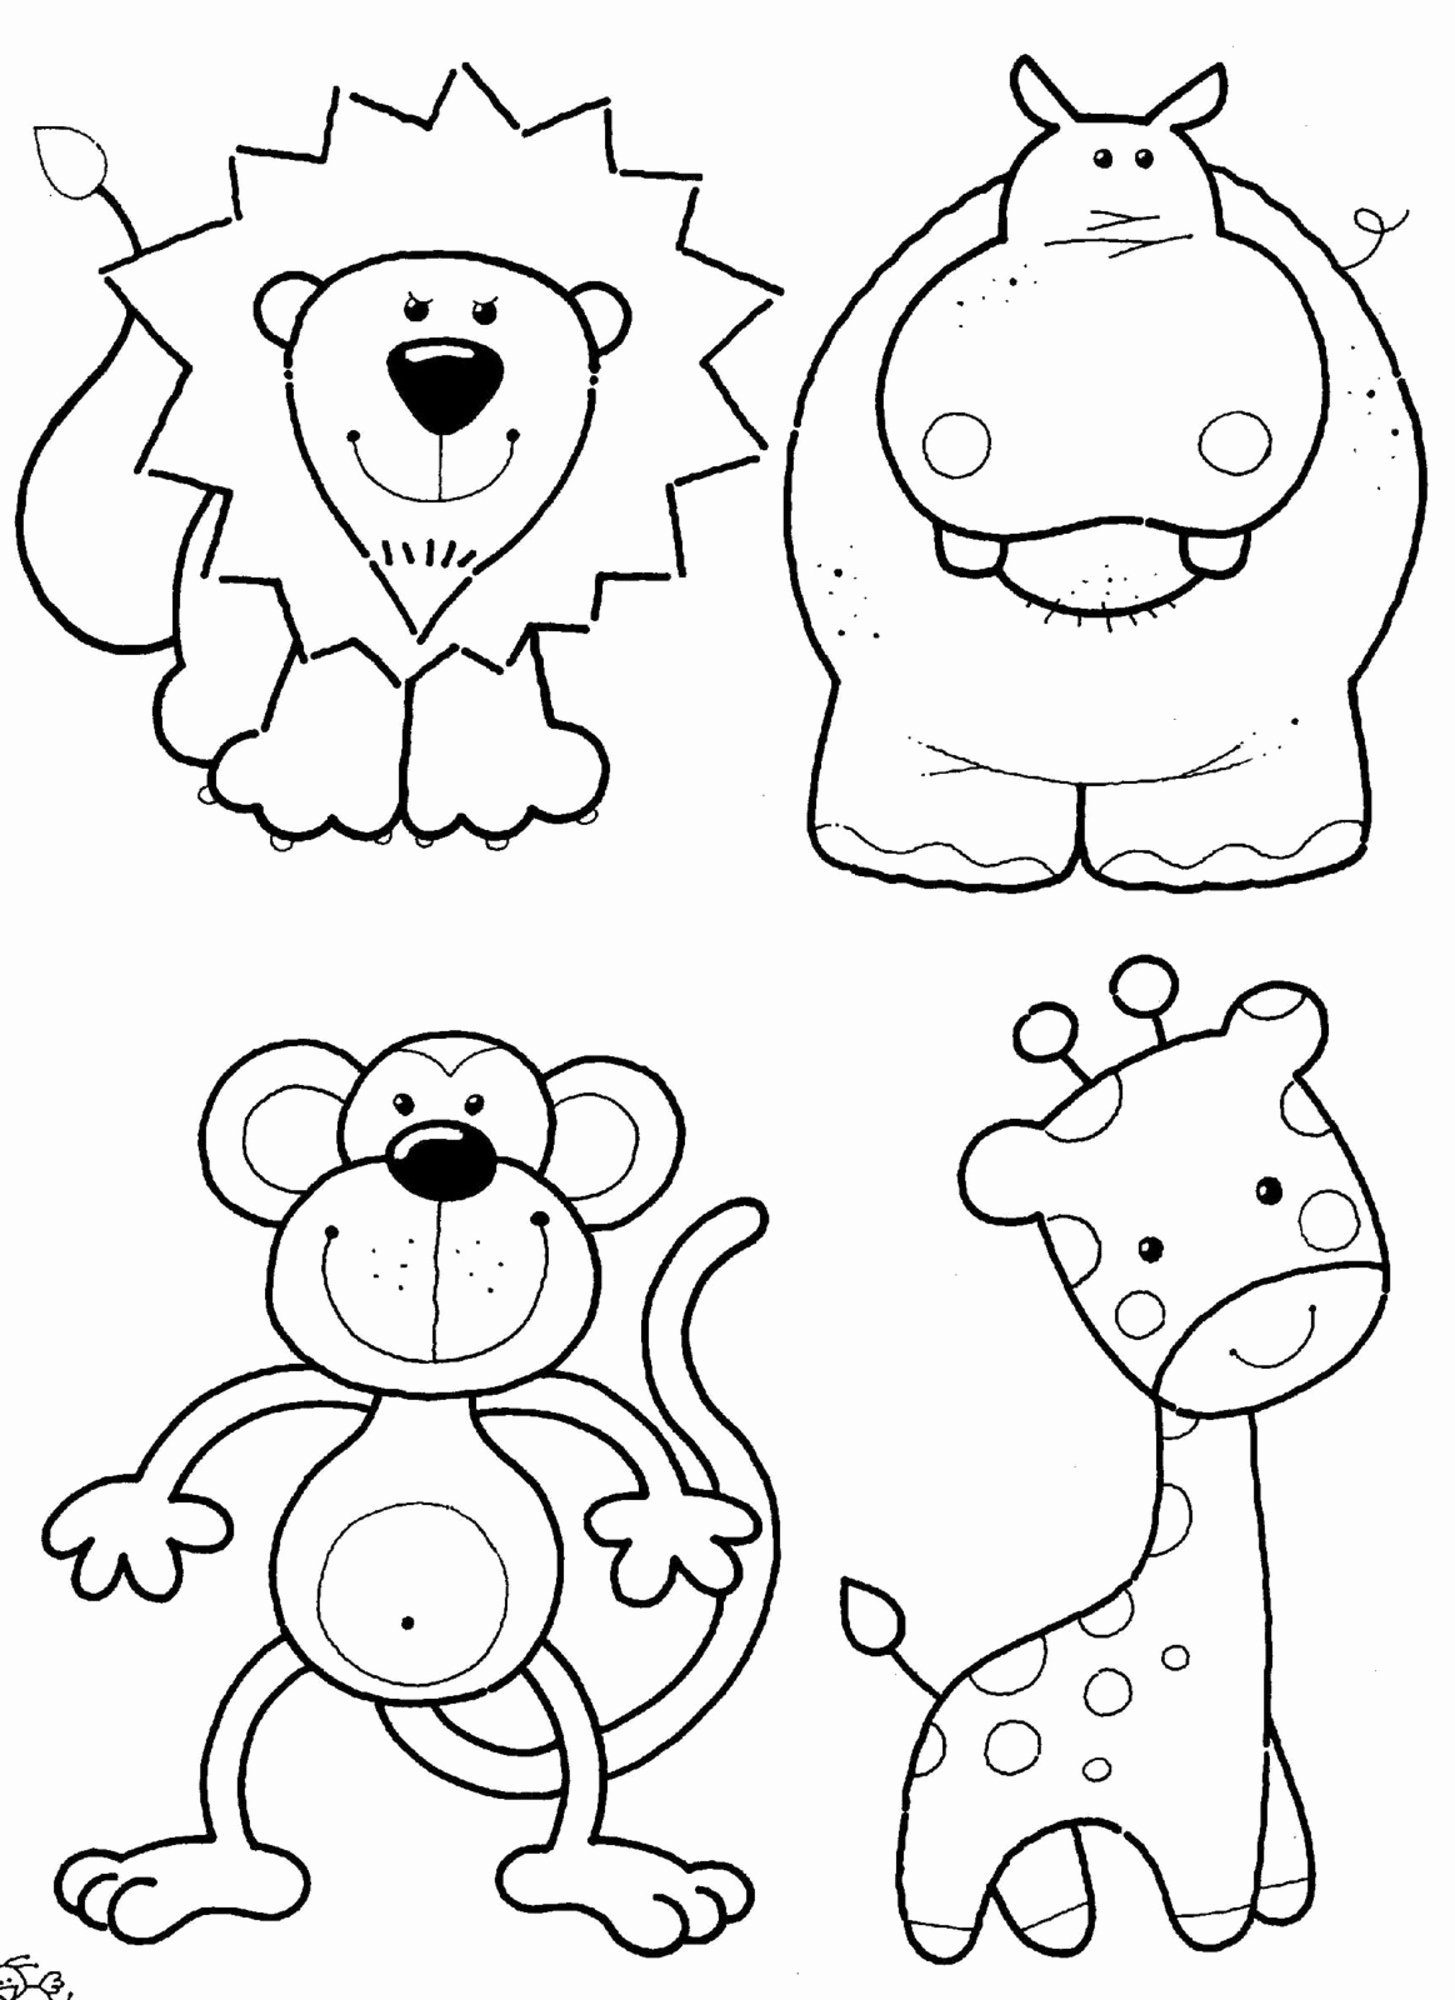 Animal Worksheets for Preschoolers Lovely Coloring Book Cute Animals Zoo Fabulous for themed Math